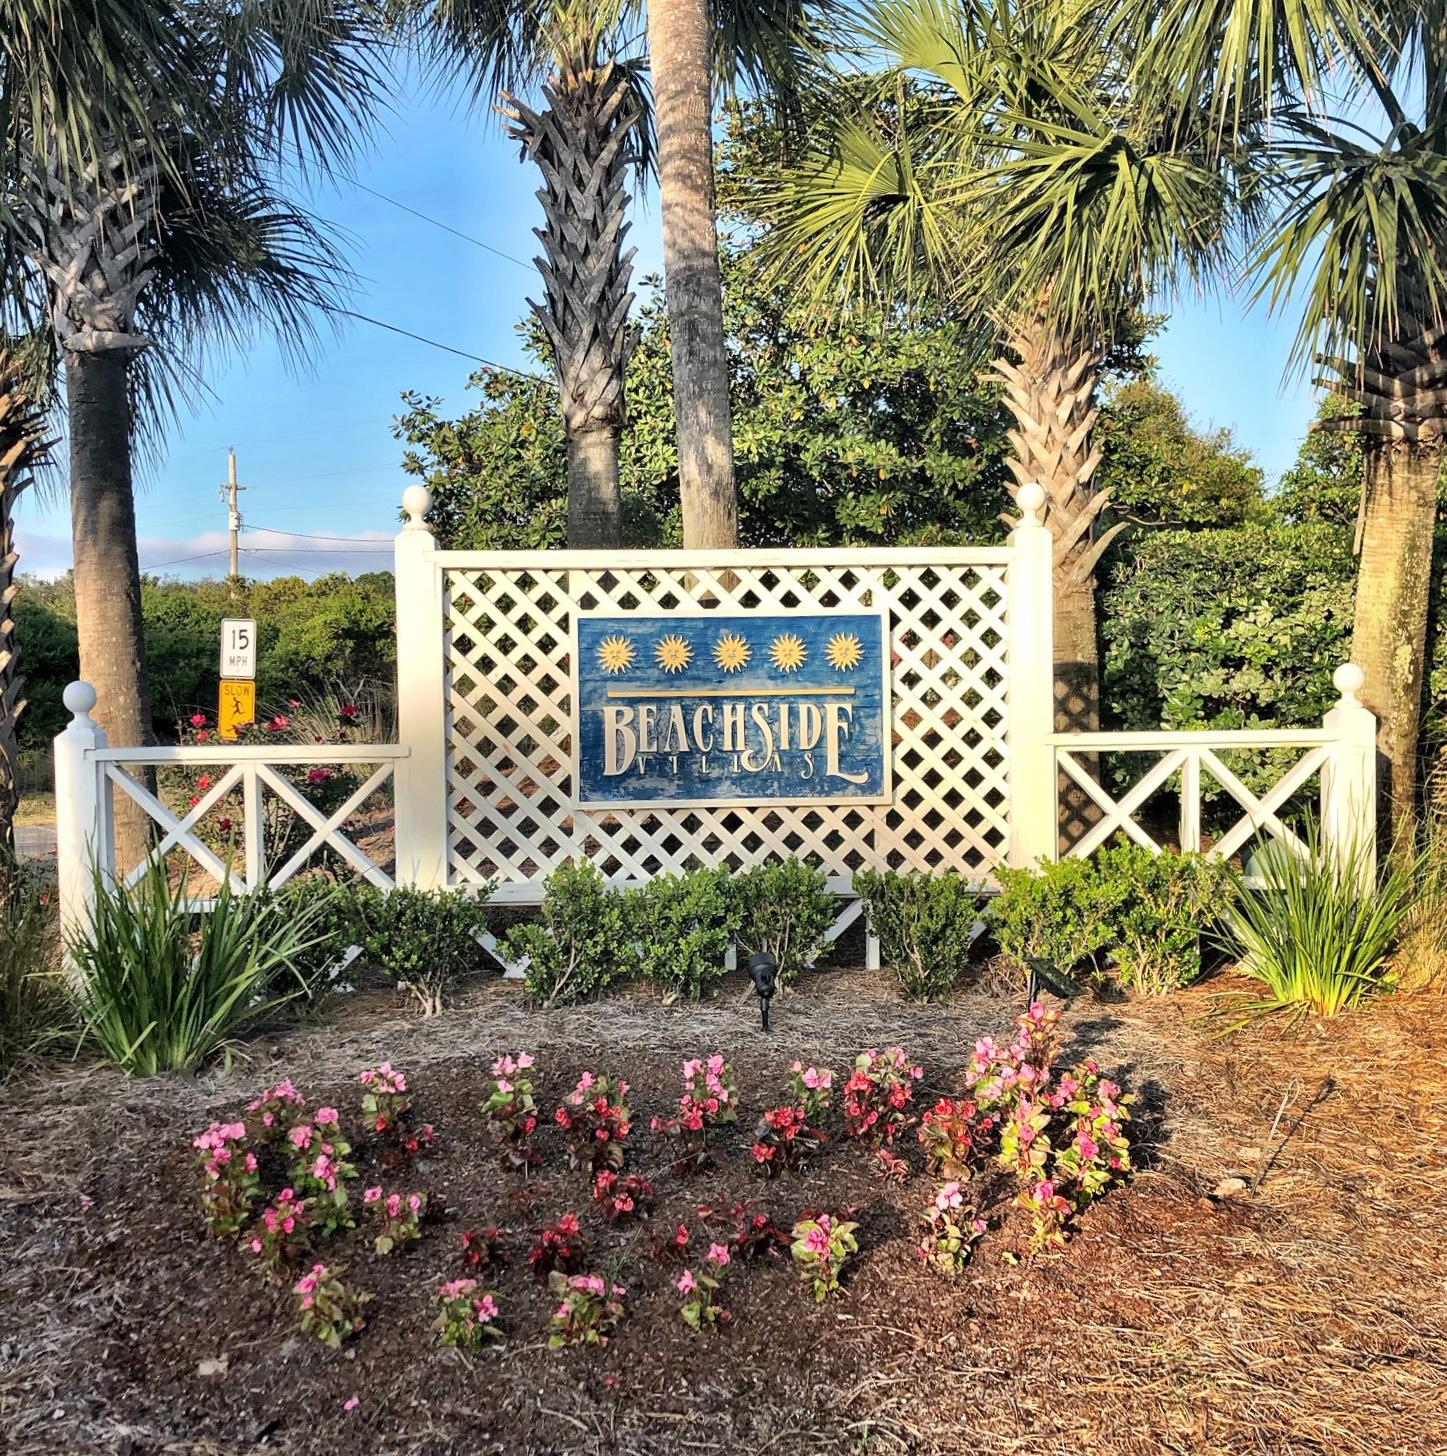 This beach property has it all with a gorgeous lake view, private beach access and located next to the pool.  Two pools, one of which is heated, two tennis courts, shuffleboard, and outdoor grilling area add the full package of relaxation and play.  The unit rents great and  makes a wonderful 2nd home to those that just want to come down to the Emerald Coast, kick off their flip flops and enjoy natural beauty and time with family and friends.  Just off the beaten path of 30A in Seagrove, all the best restaurants, entertainment, and shopping are within a bike ride or walk away. the heat and air unit was replaced in 2011, the water heater, refrigerator, washer/dryer replaced in 2018, and popcorn ceilings down, and wainscoting up in 2018.